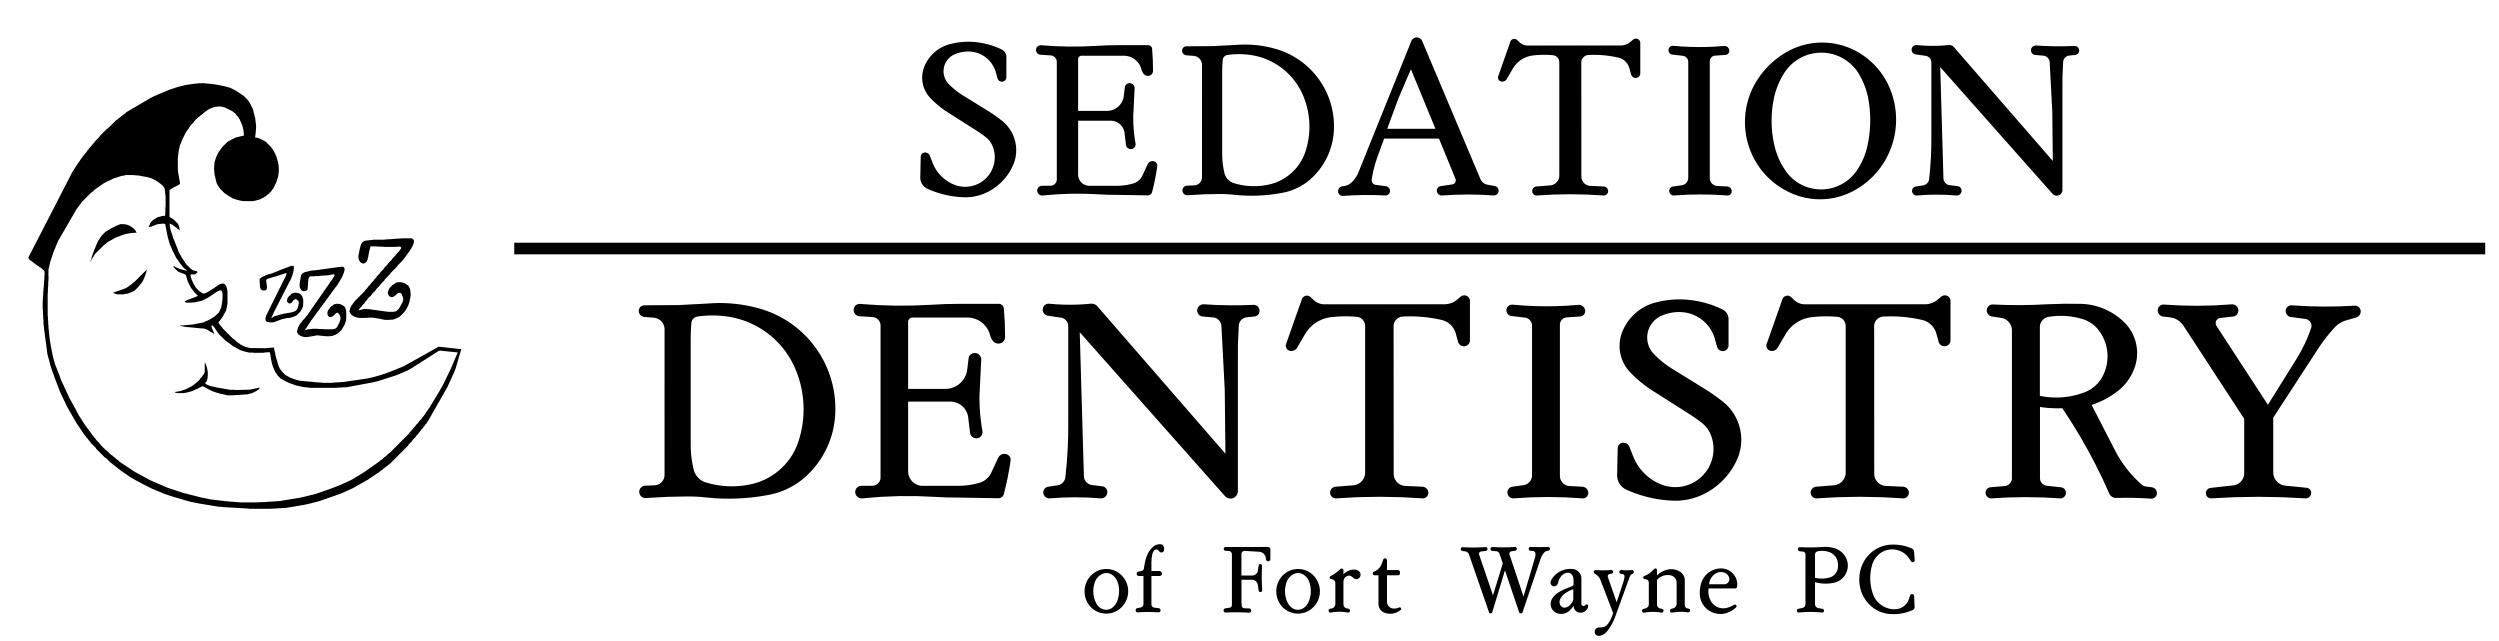 Sedation Dentistry logo